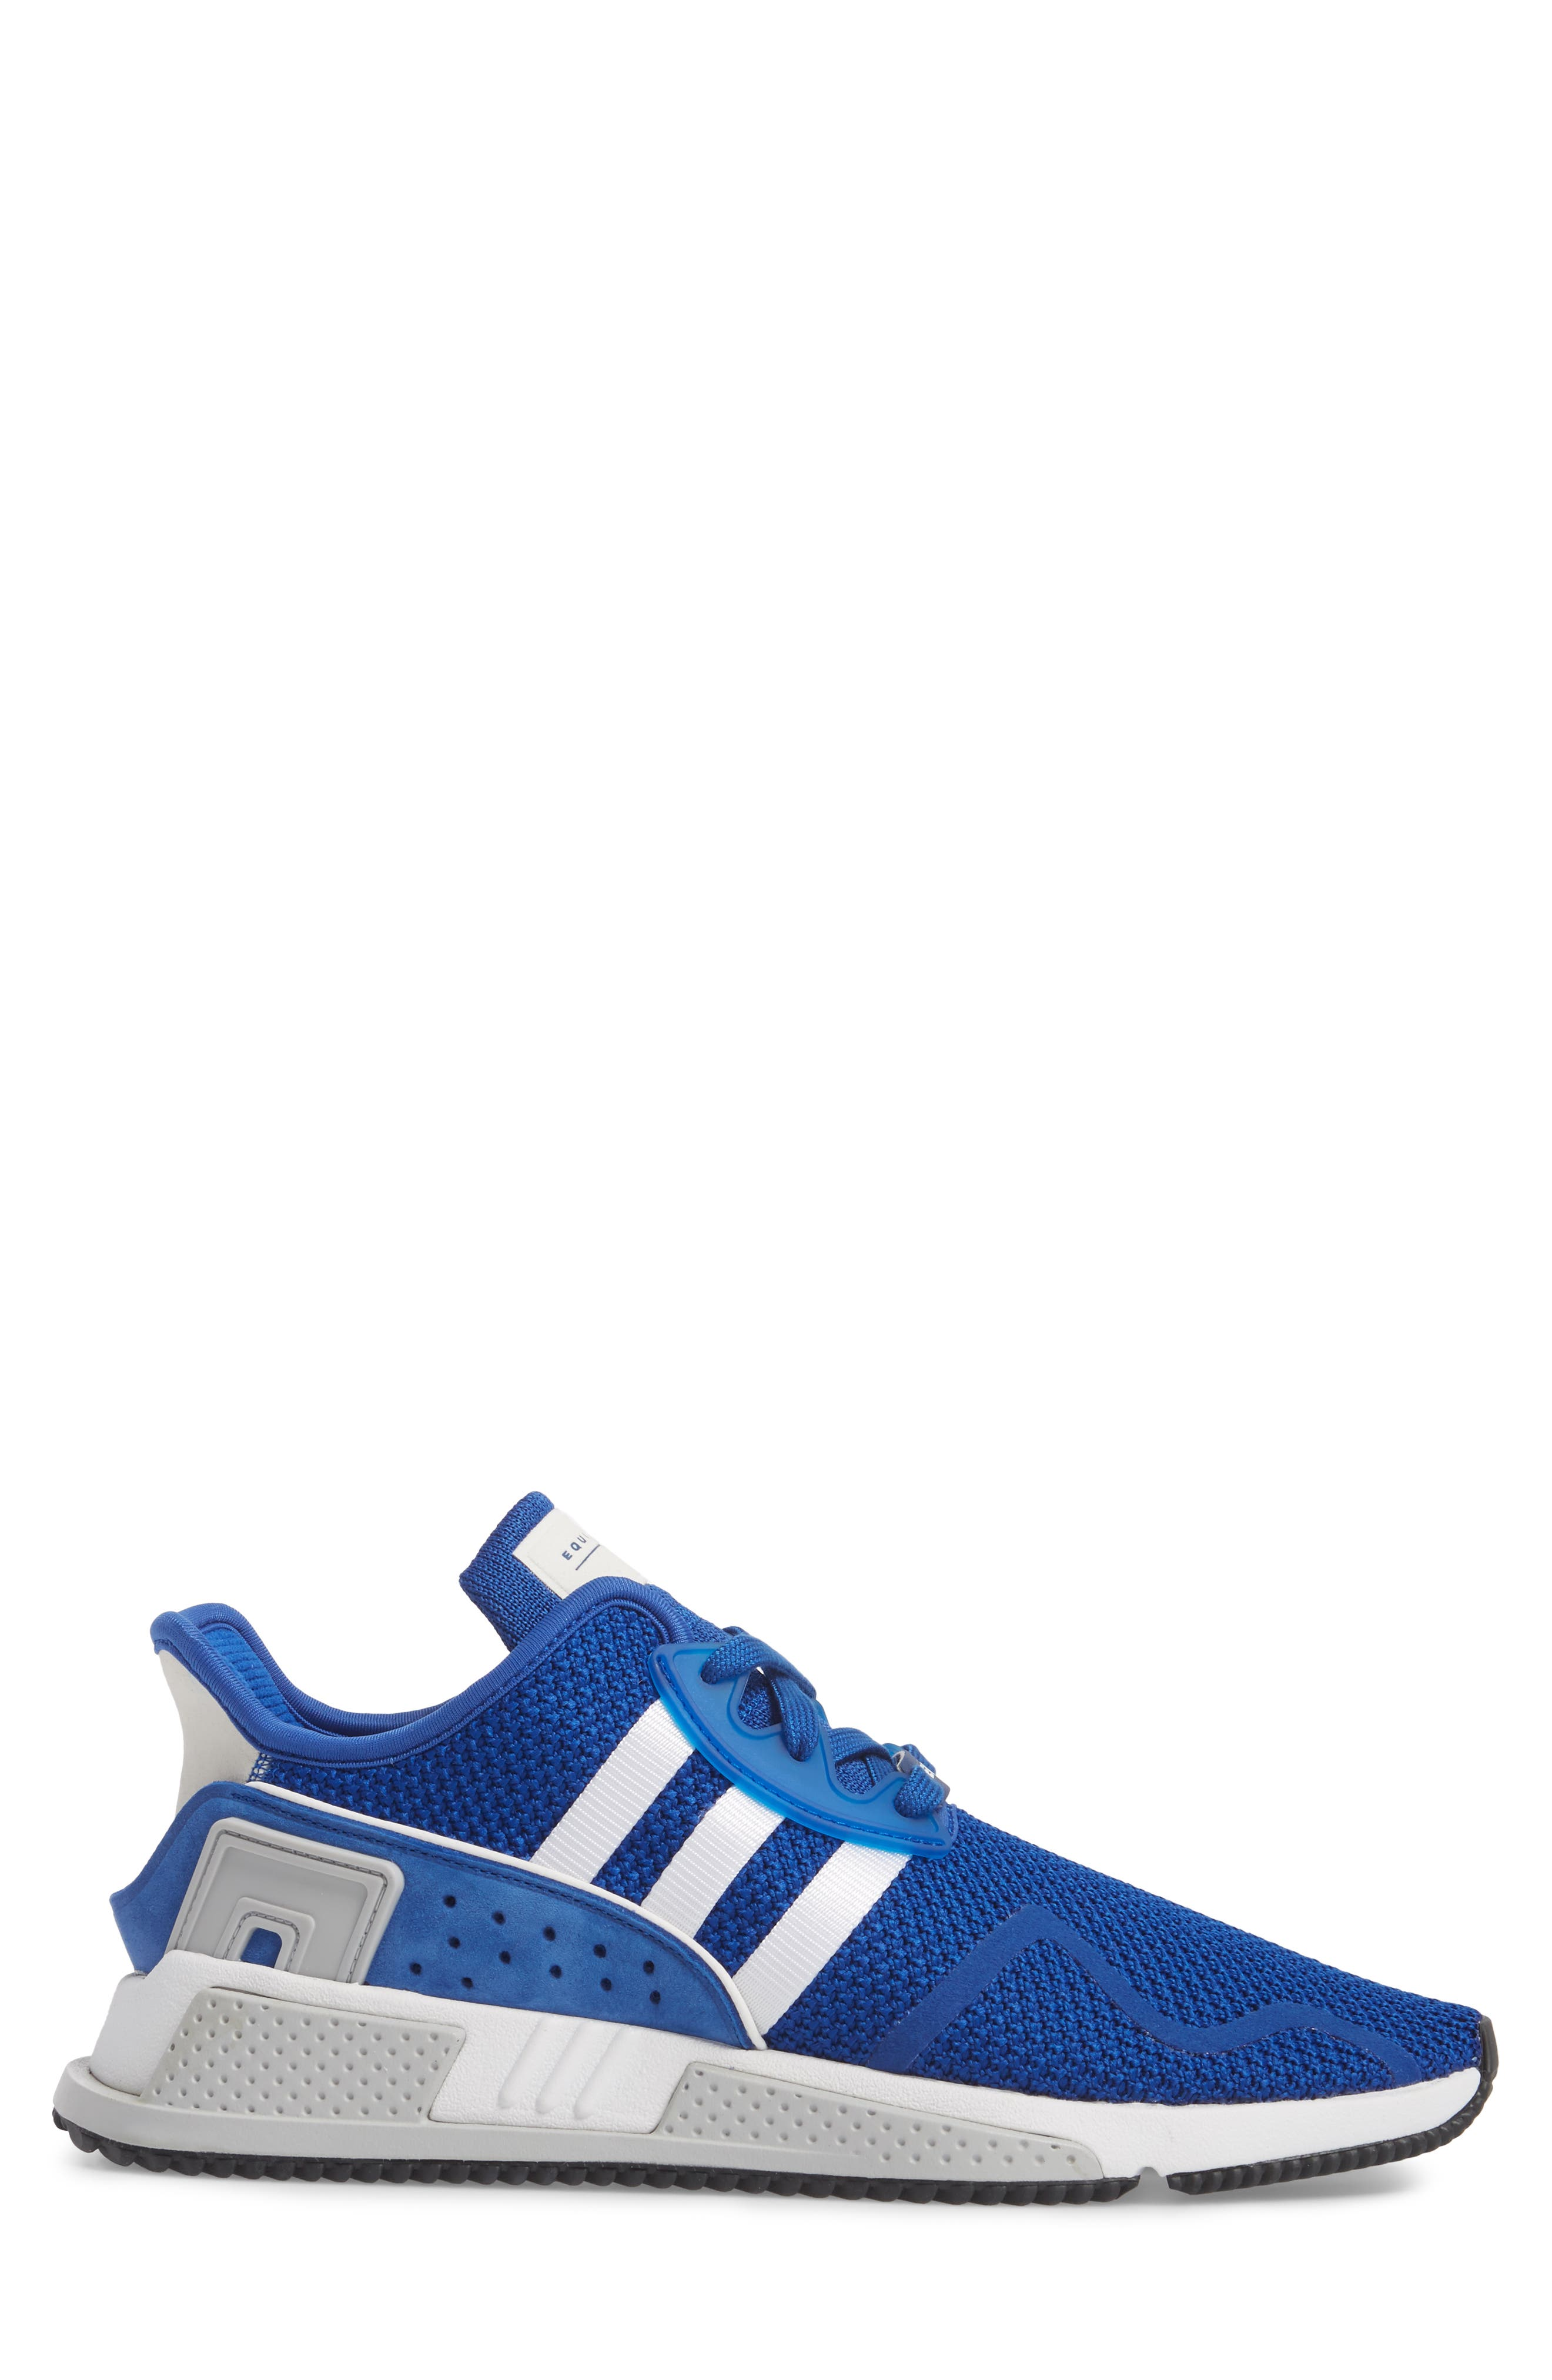 EQT Cushion ADV Sneaker,                             Alternate thumbnail 3, color,                             Royal/ Crystal White